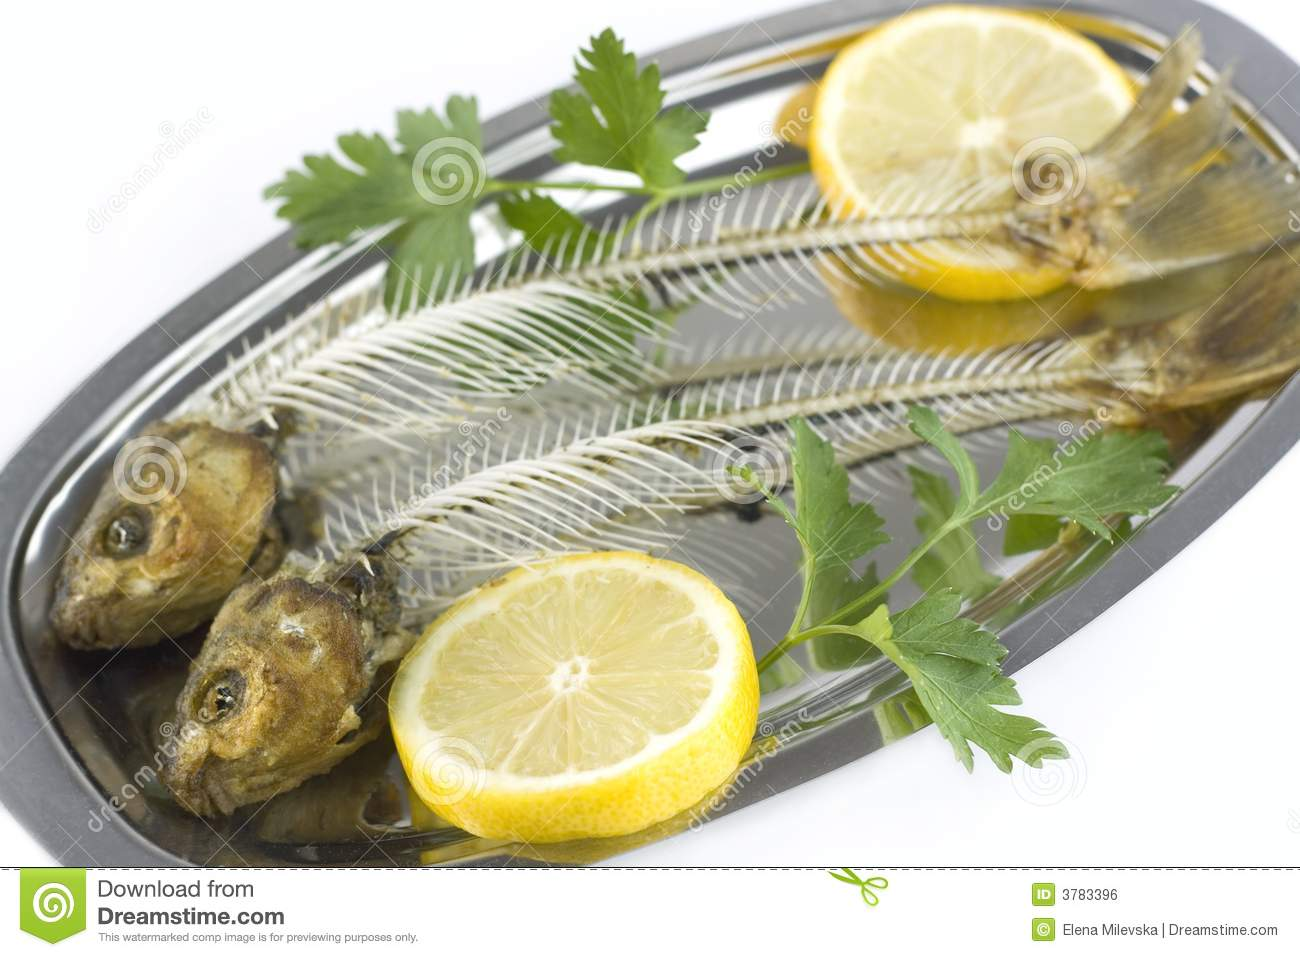 Fish bones royalty free stock image image 3783396 for Fish bone meal